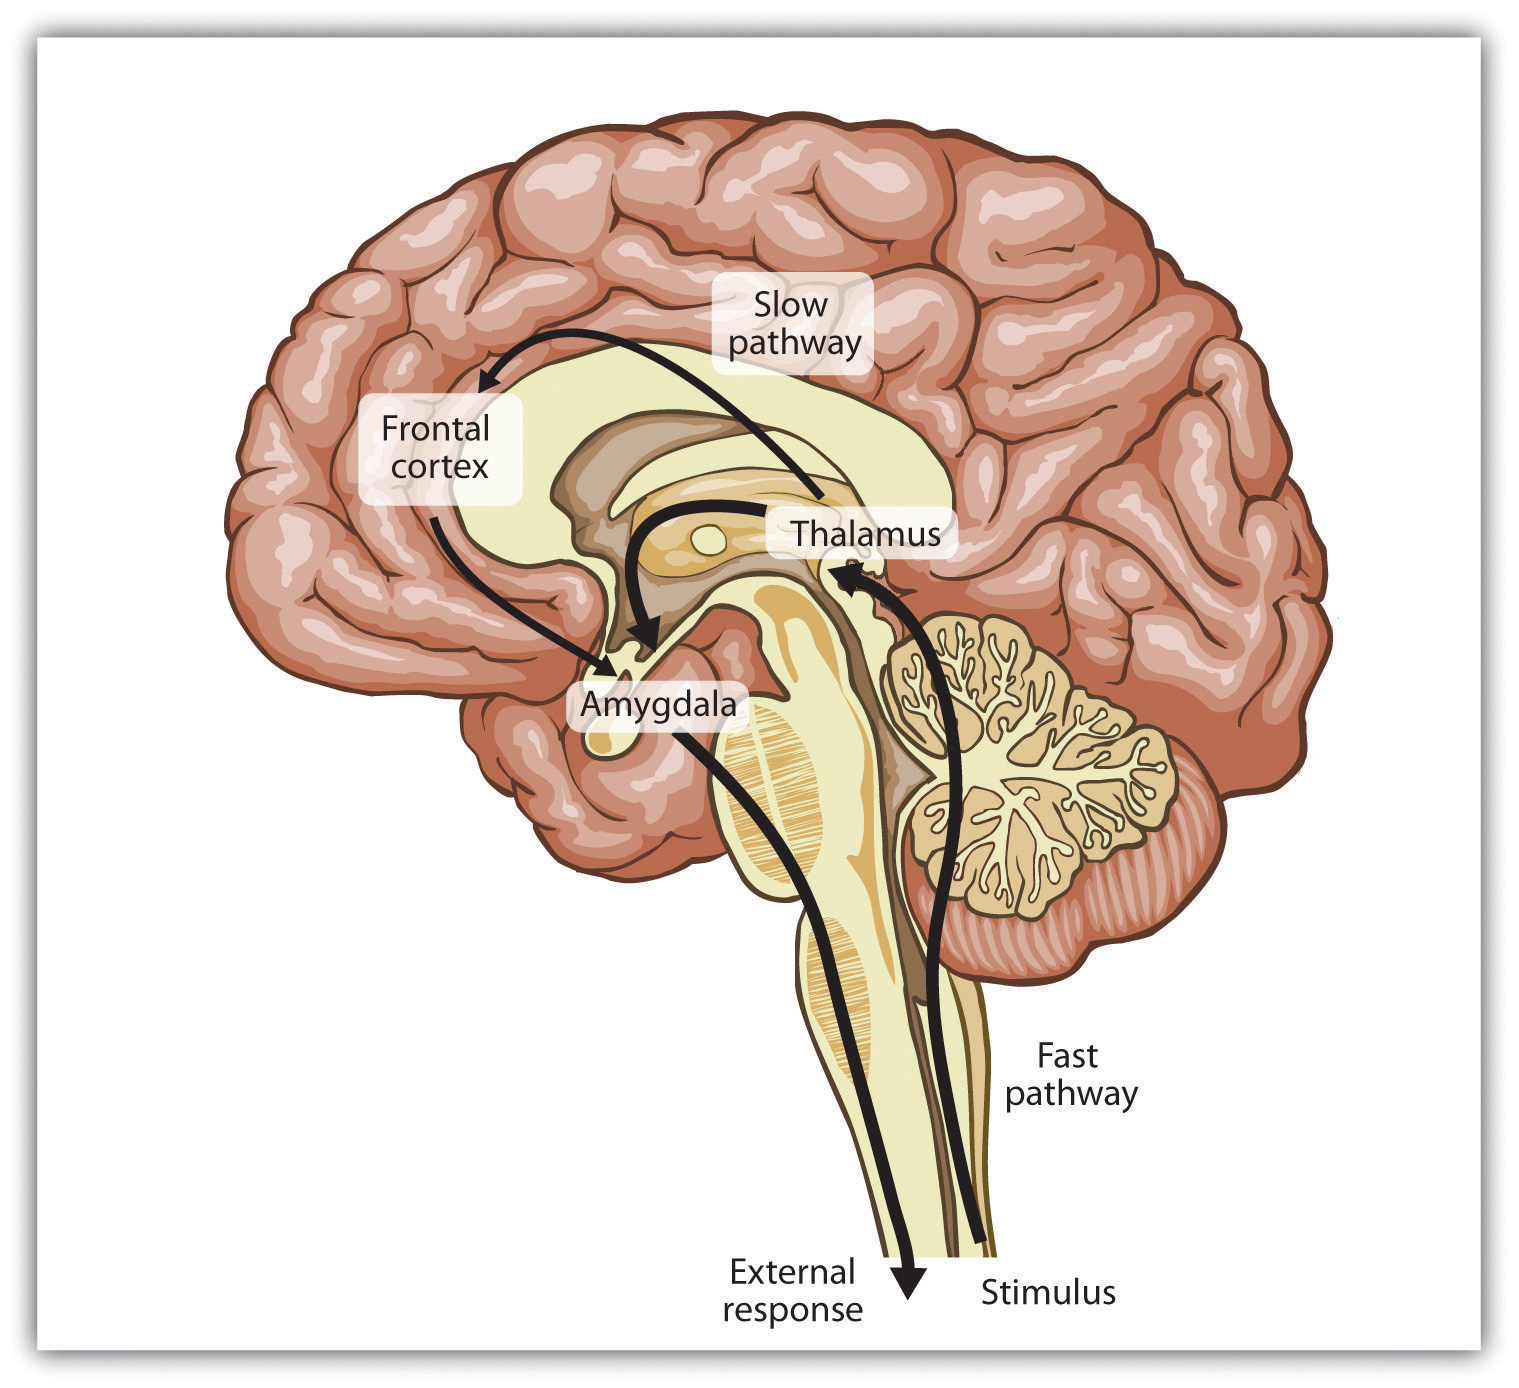 There are two emotional pathways in the brain (one slow and one fast), both of which are controlled by the thalamus.